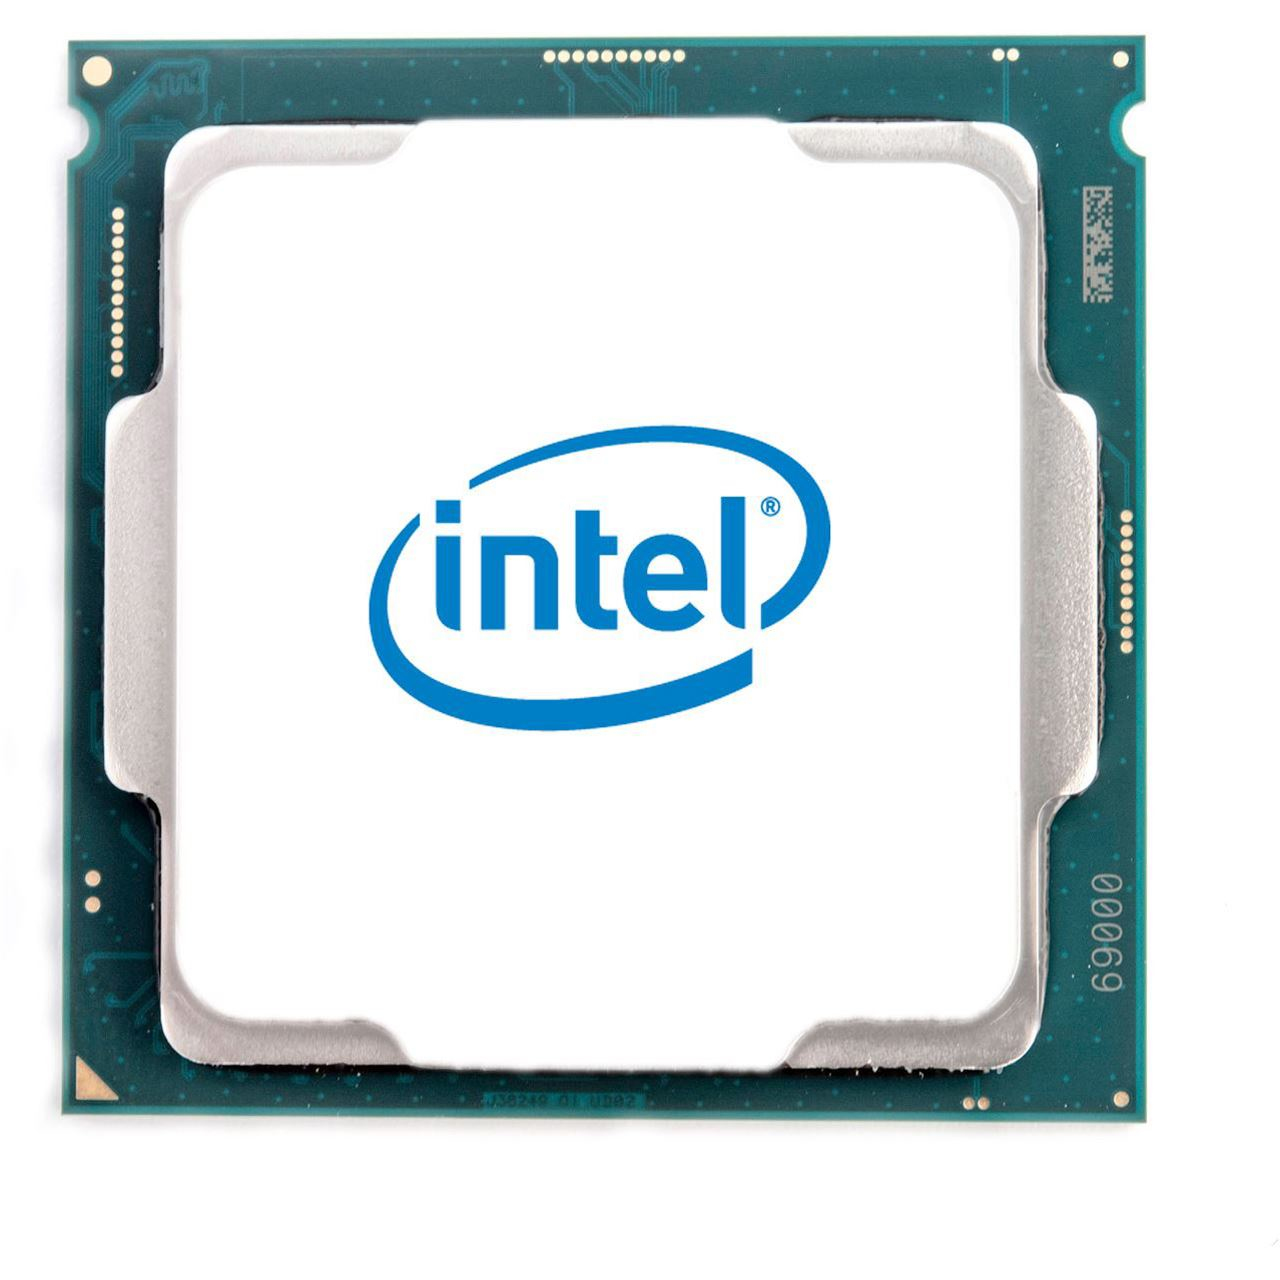 INTEL CM8068403874212 CORE I7-9700K PROCESSOR 3.6 GHZ 12 MB SMART CACHE (TRAY ONLY PROCESSOR)